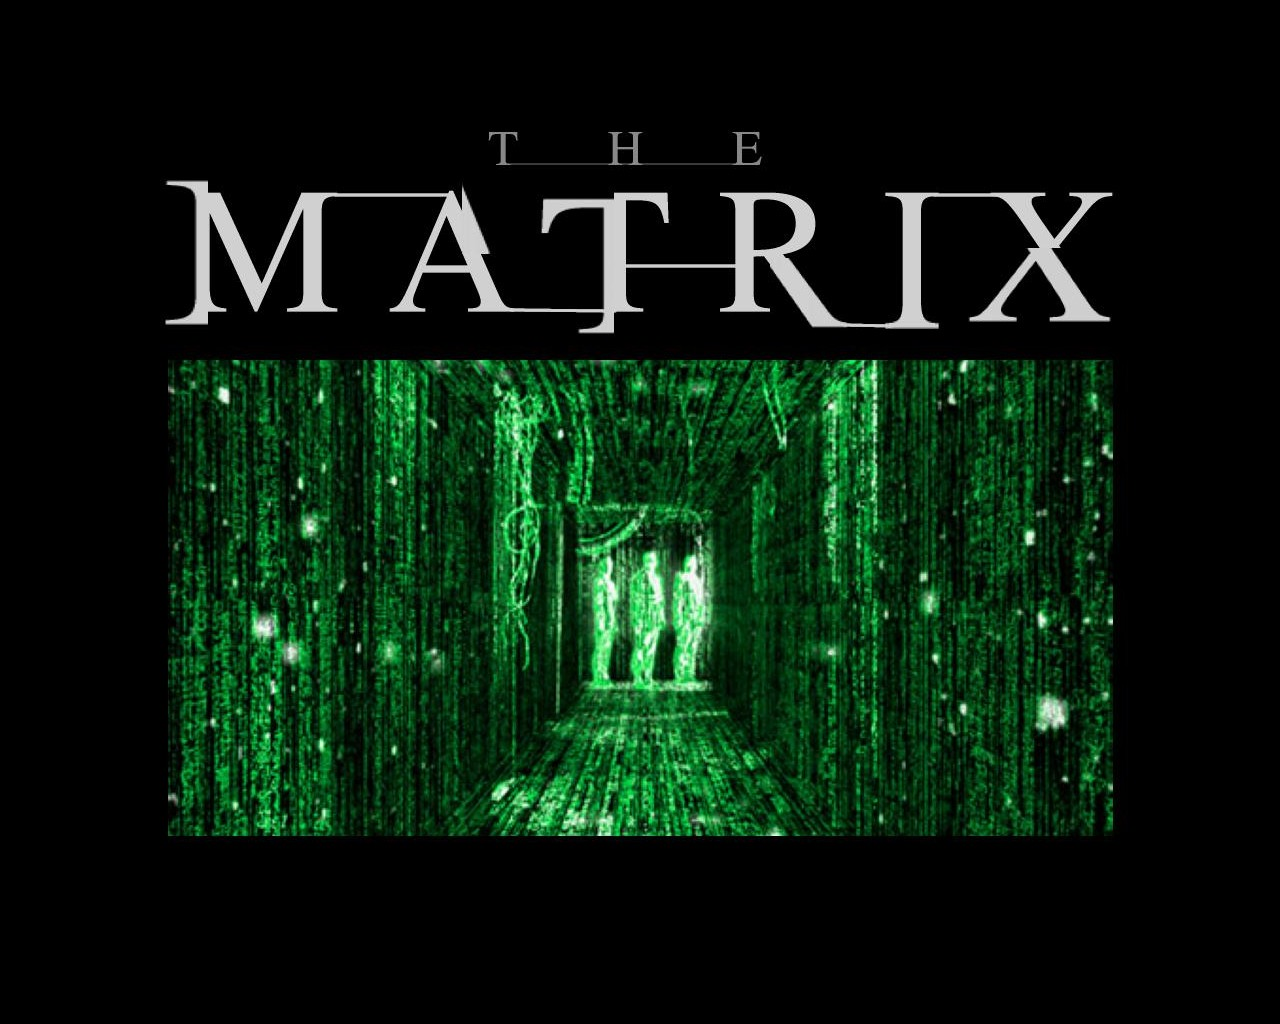 Atheist Iphone Wallpaper The Matrix Wallpapers Wallpapers High Quality Download Free